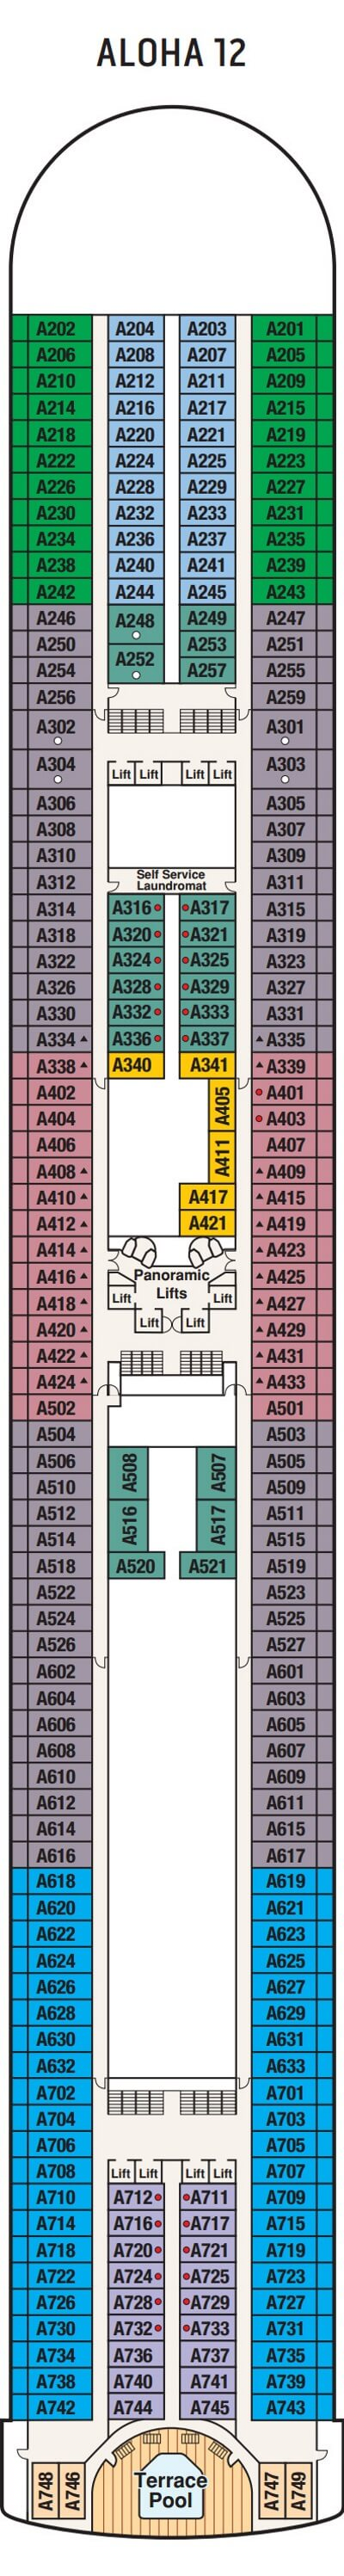 Grand Princess Aloha Deck 12 layout